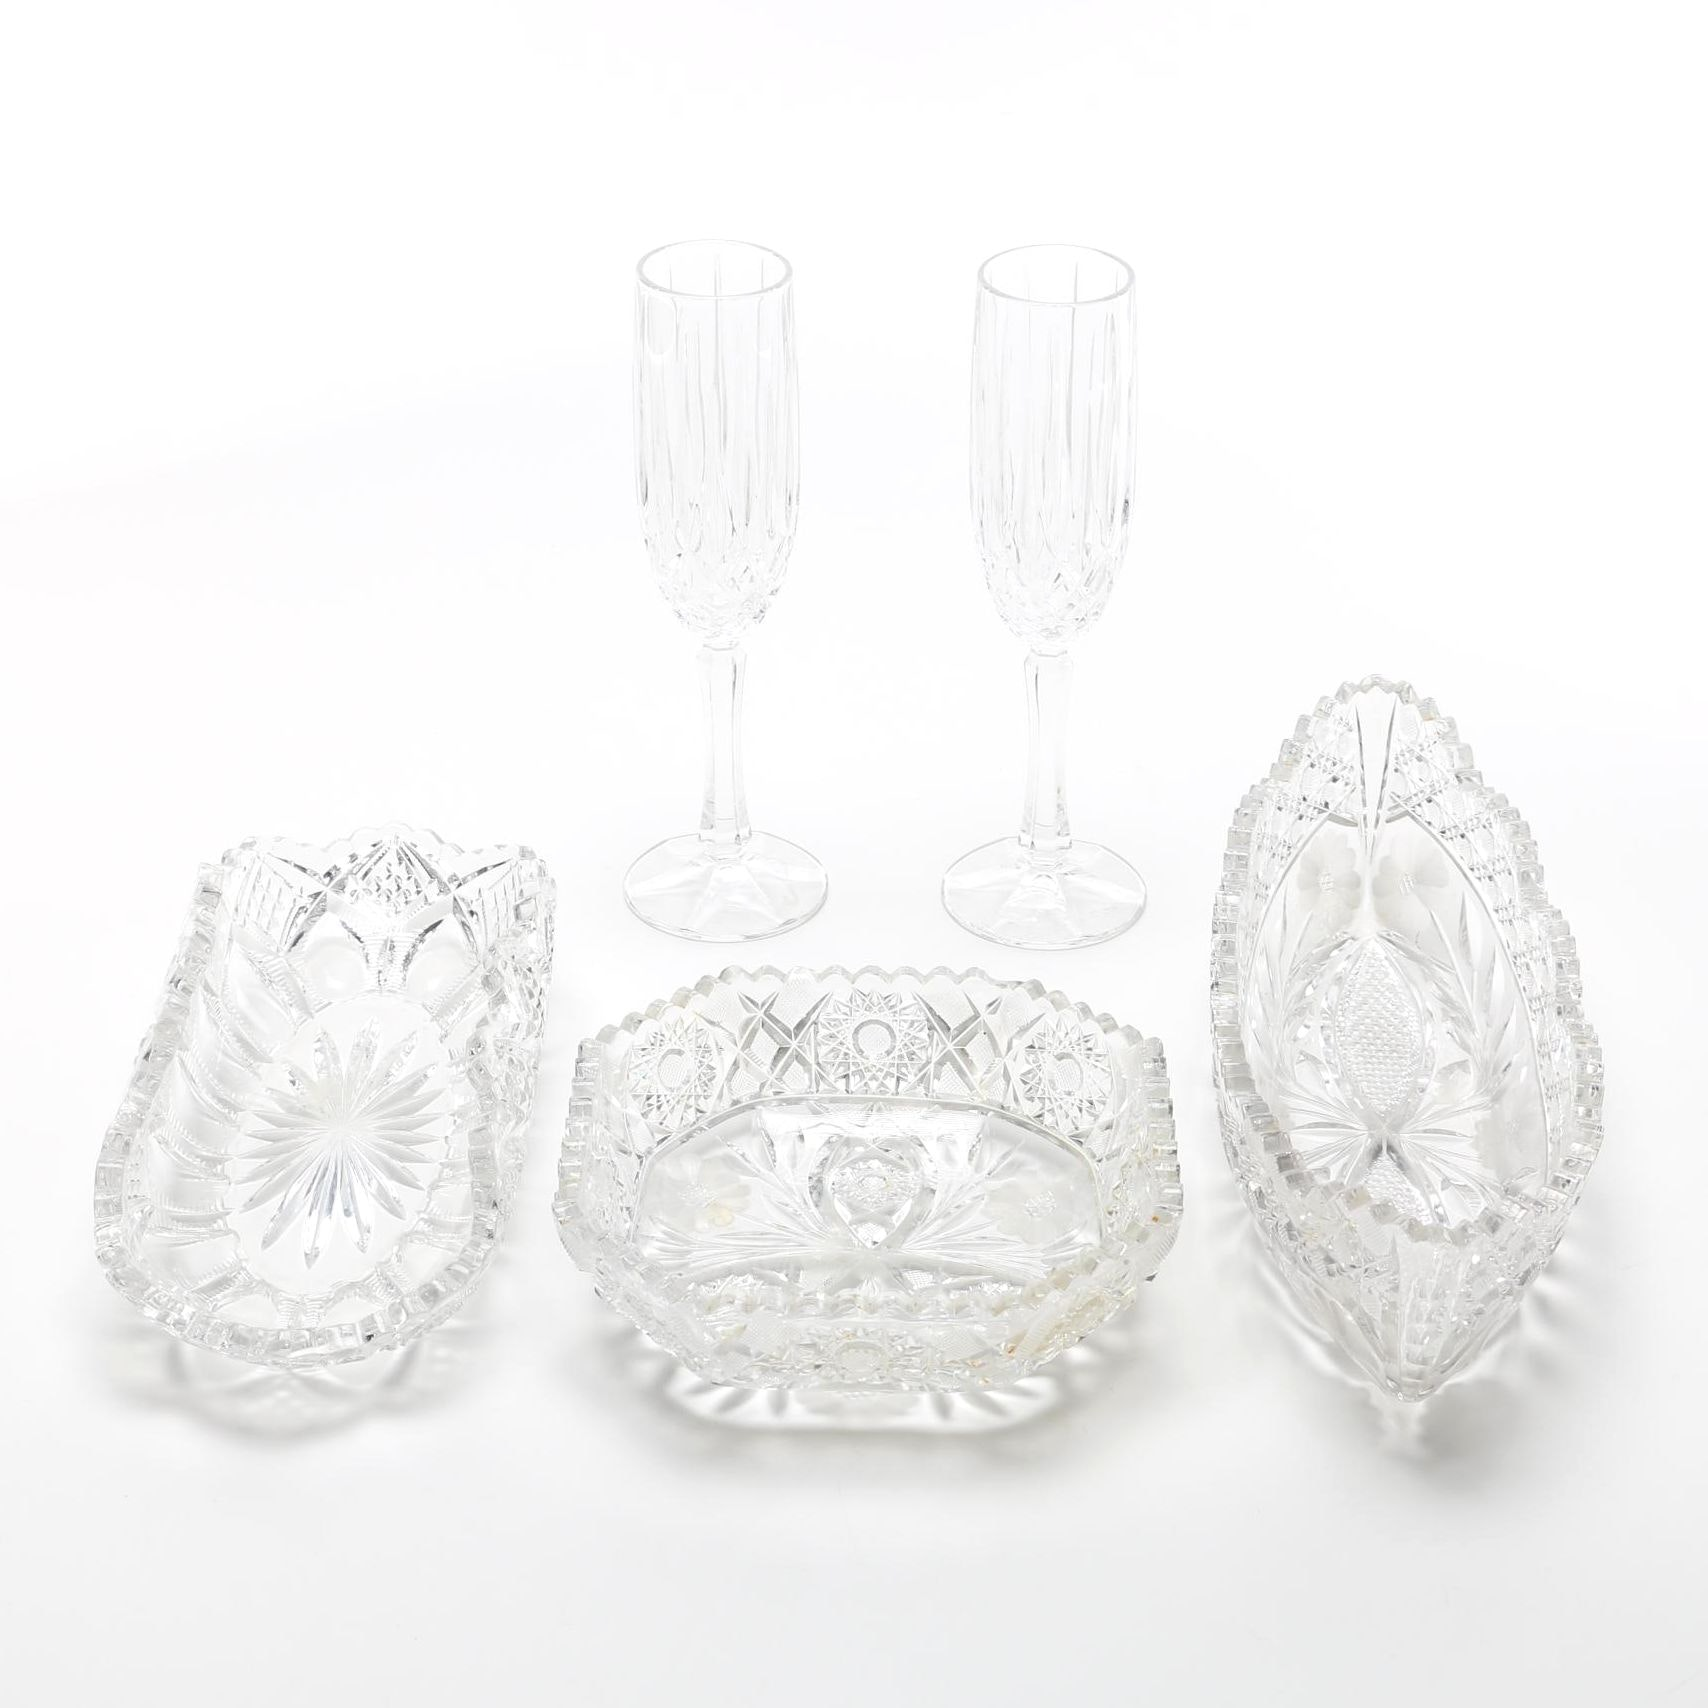 Assortment of Cut Glass Decor